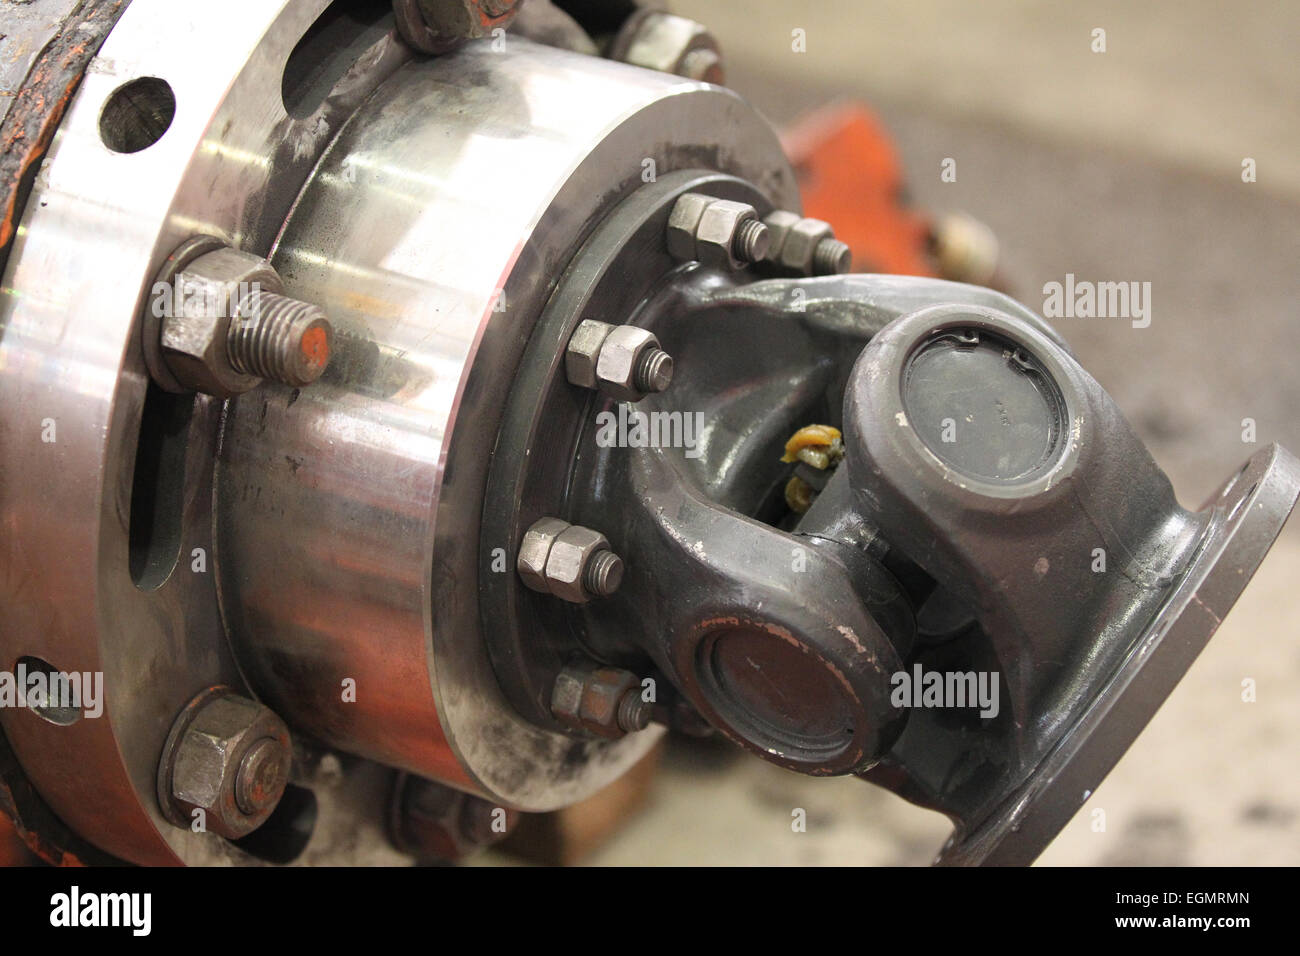 wheel assembly rotation transmitting gear shaft - Stock Image